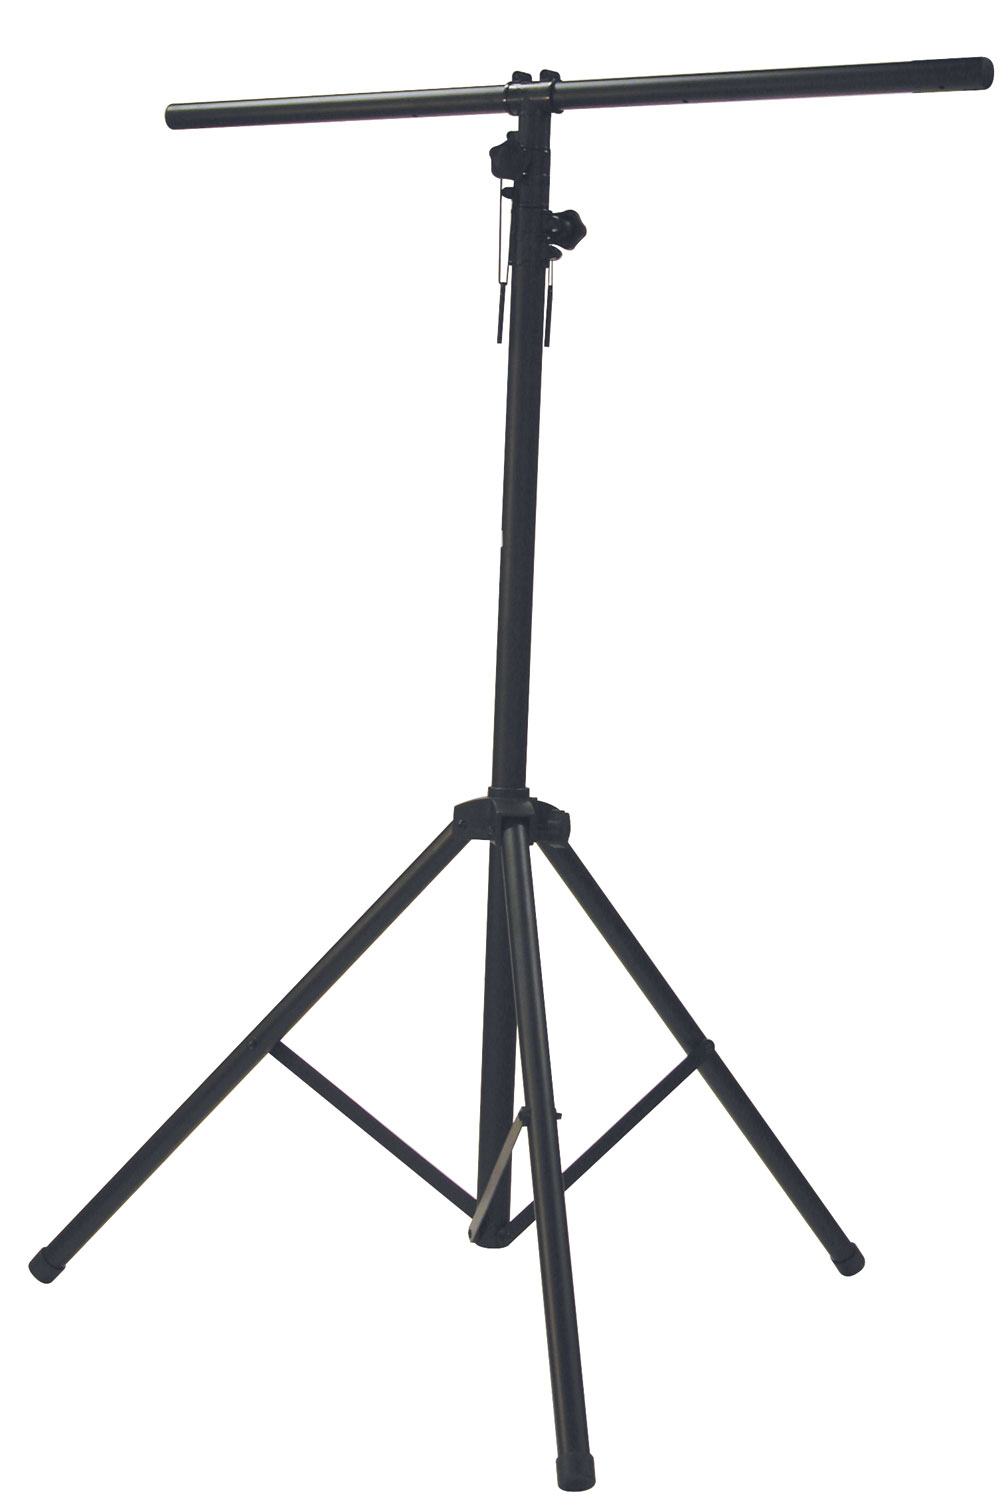 Heavy duty lighting stand